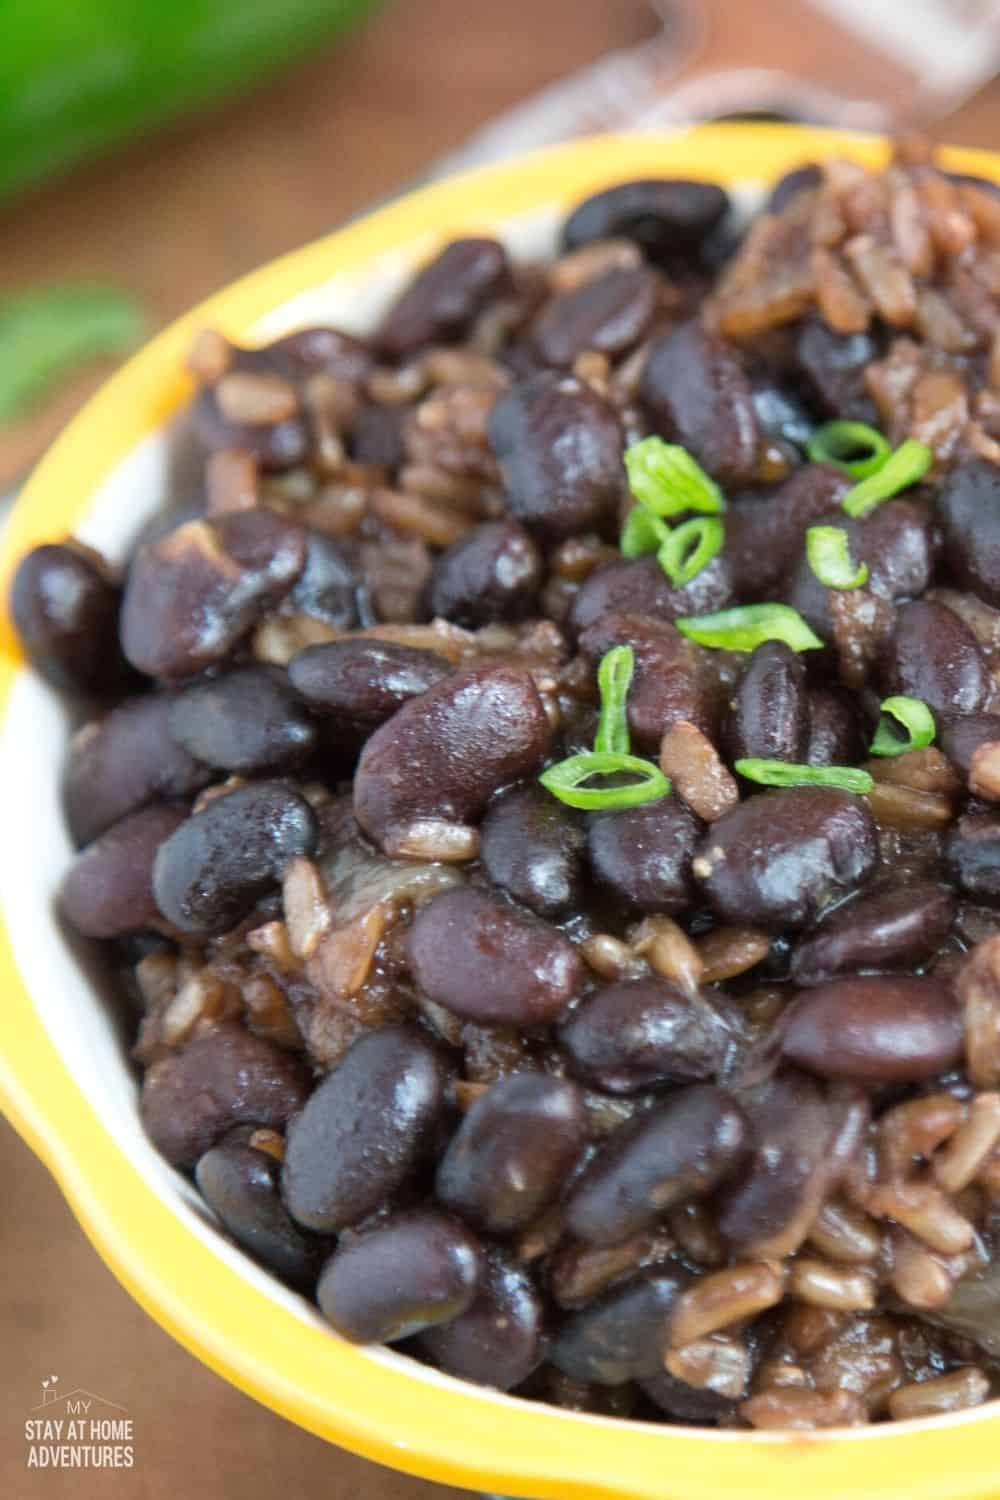 Looking for a meatless or vegan-friendly dinner? Try this Instant Pot Black Beans and Brown Rice Recipe for tonight. Full of flavor and easy to make. #meatless #Instantpot #brownrice #blackbeanrecipe #nomeatrecipe via @mystayathome